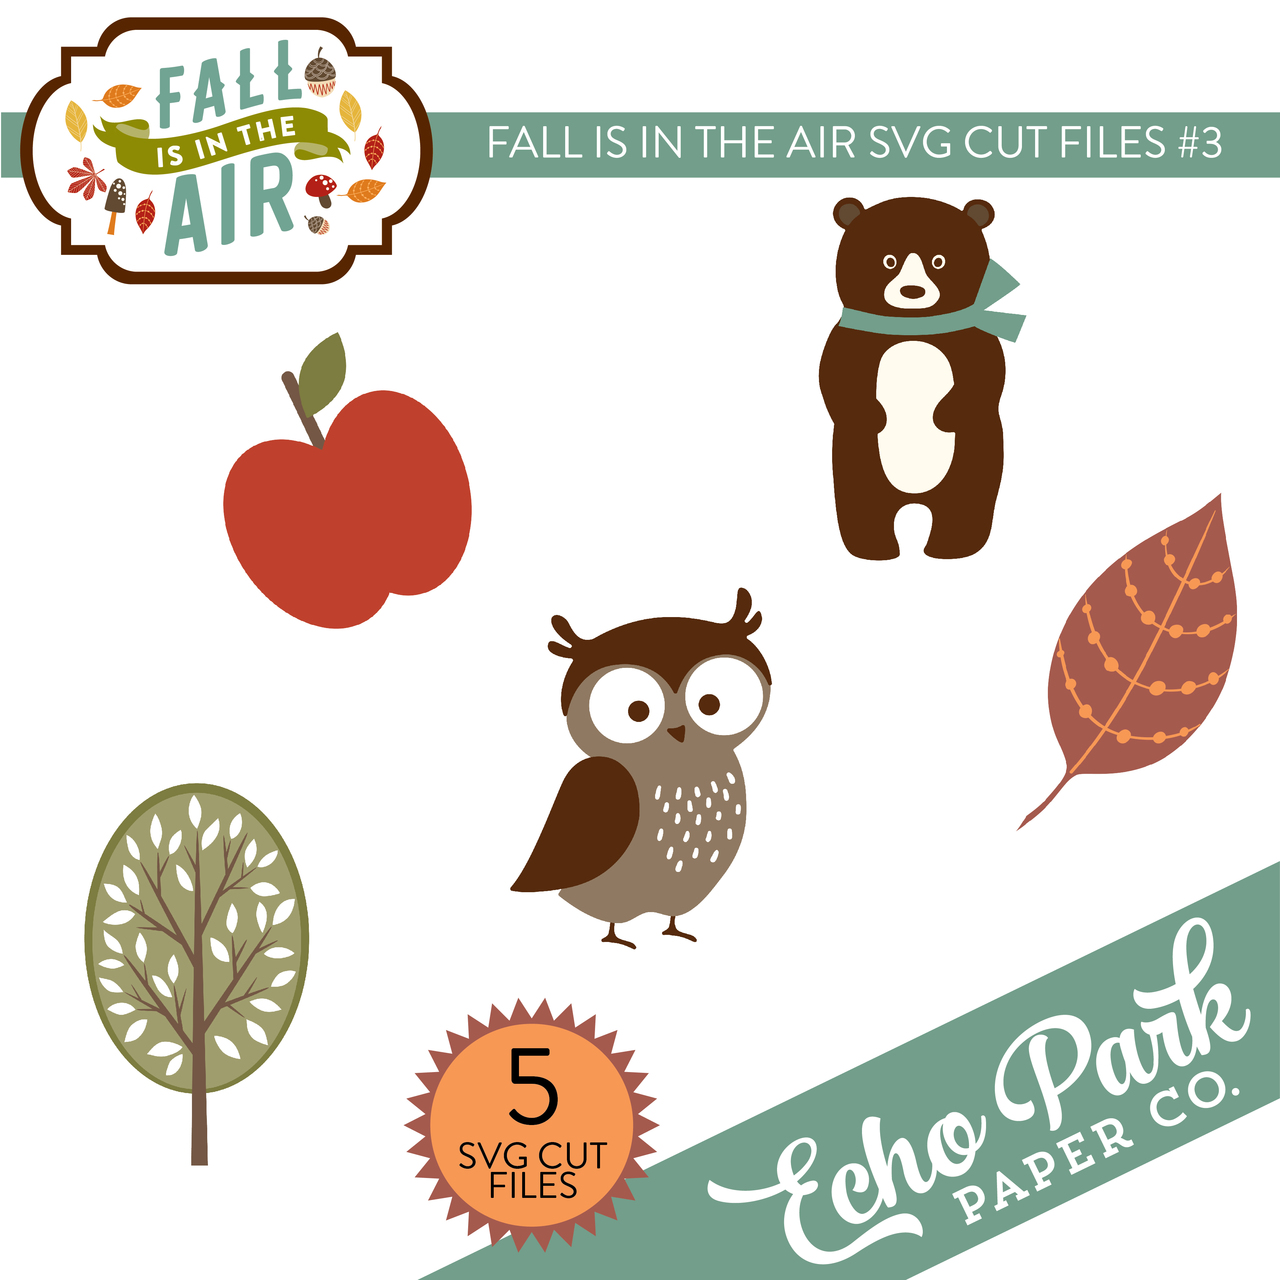 Fall Is In The Air SVG Cut Files #3